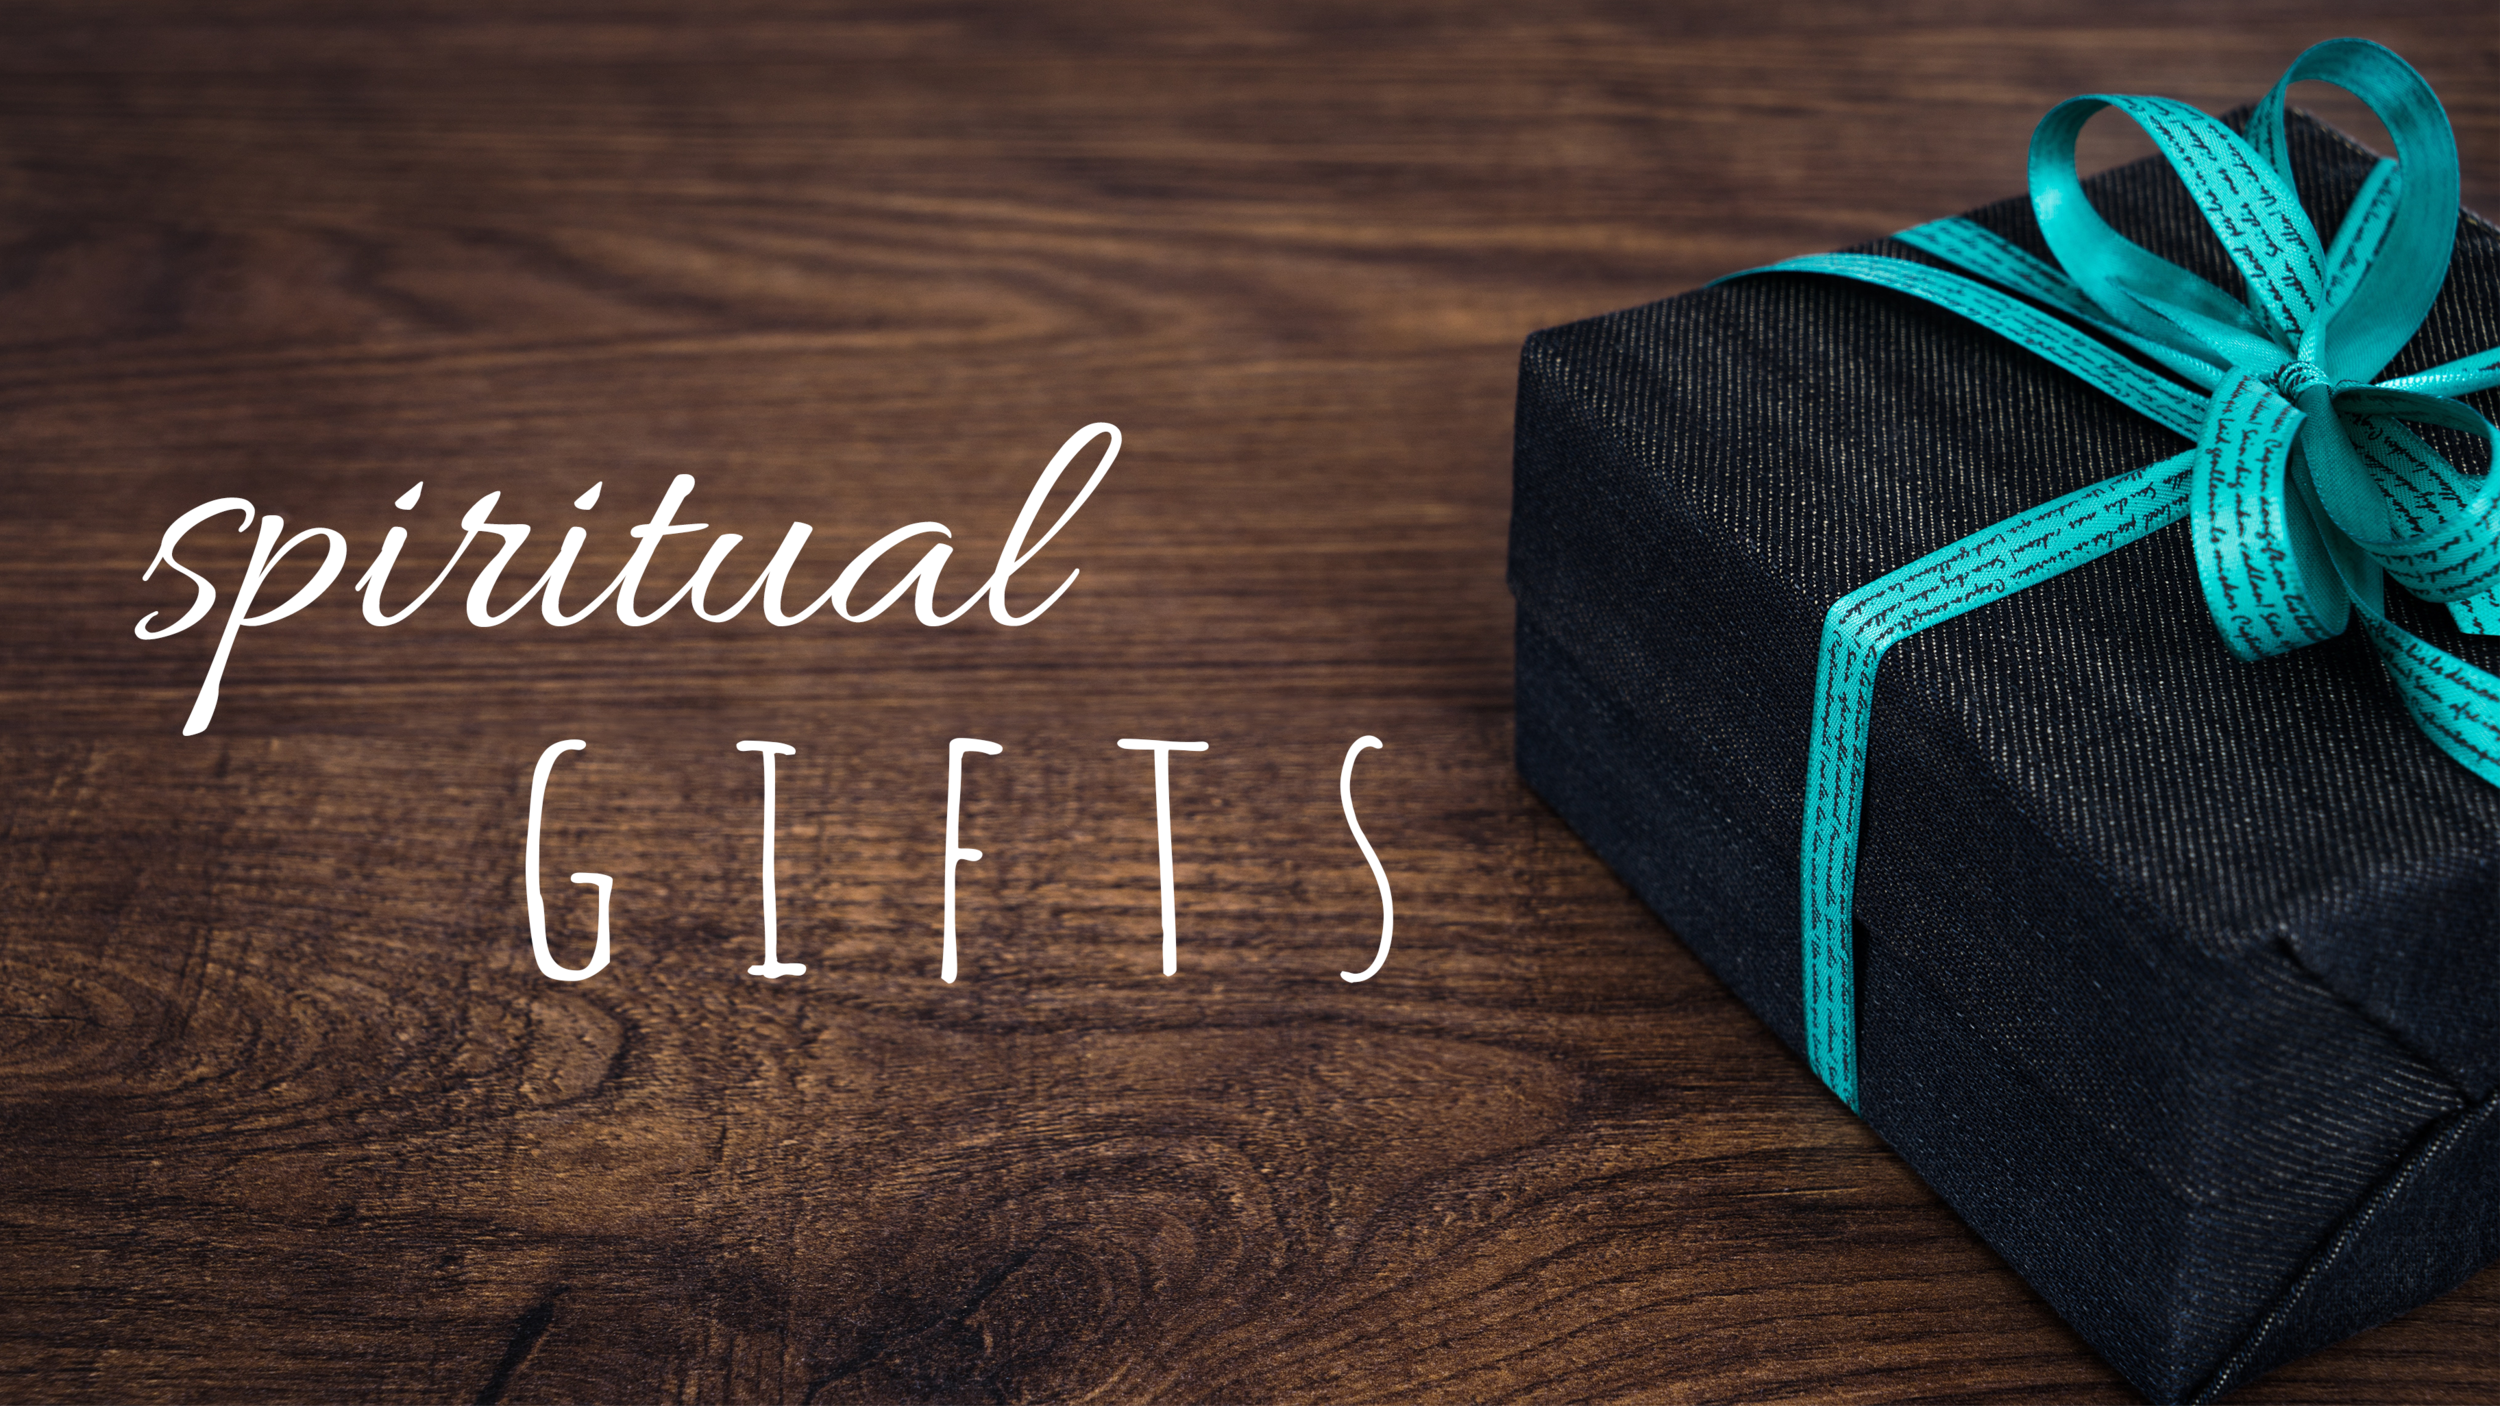 Spiritual Gifts - 1. Following the Example of Jesus2. The Love Gifts 13. The Love Gifts 24. The Word Gifts5. The Power Gifts 16. The Power Gifts 27. The Power Gifts 38. The Power Gifts 49. Next Steps